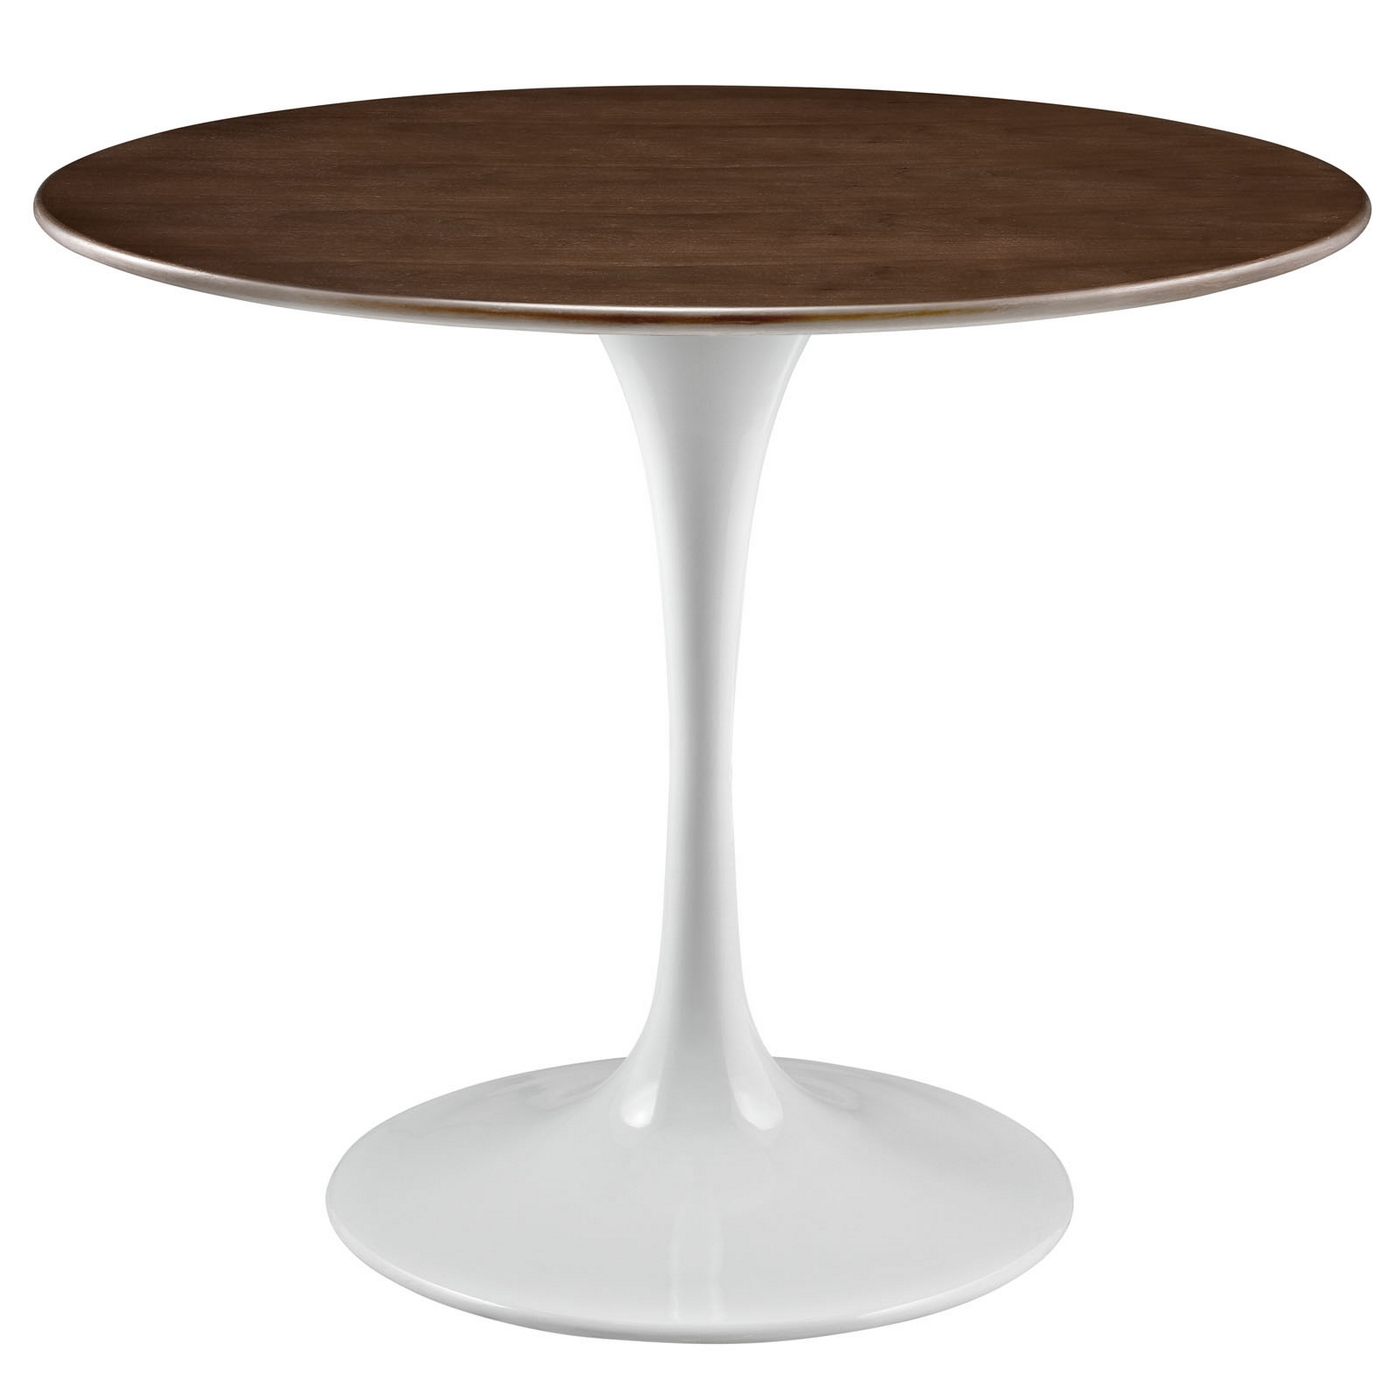 lippa 36 round walnut top dining table with lacquered finished base walnut. Black Bedroom Furniture Sets. Home Design Ideas